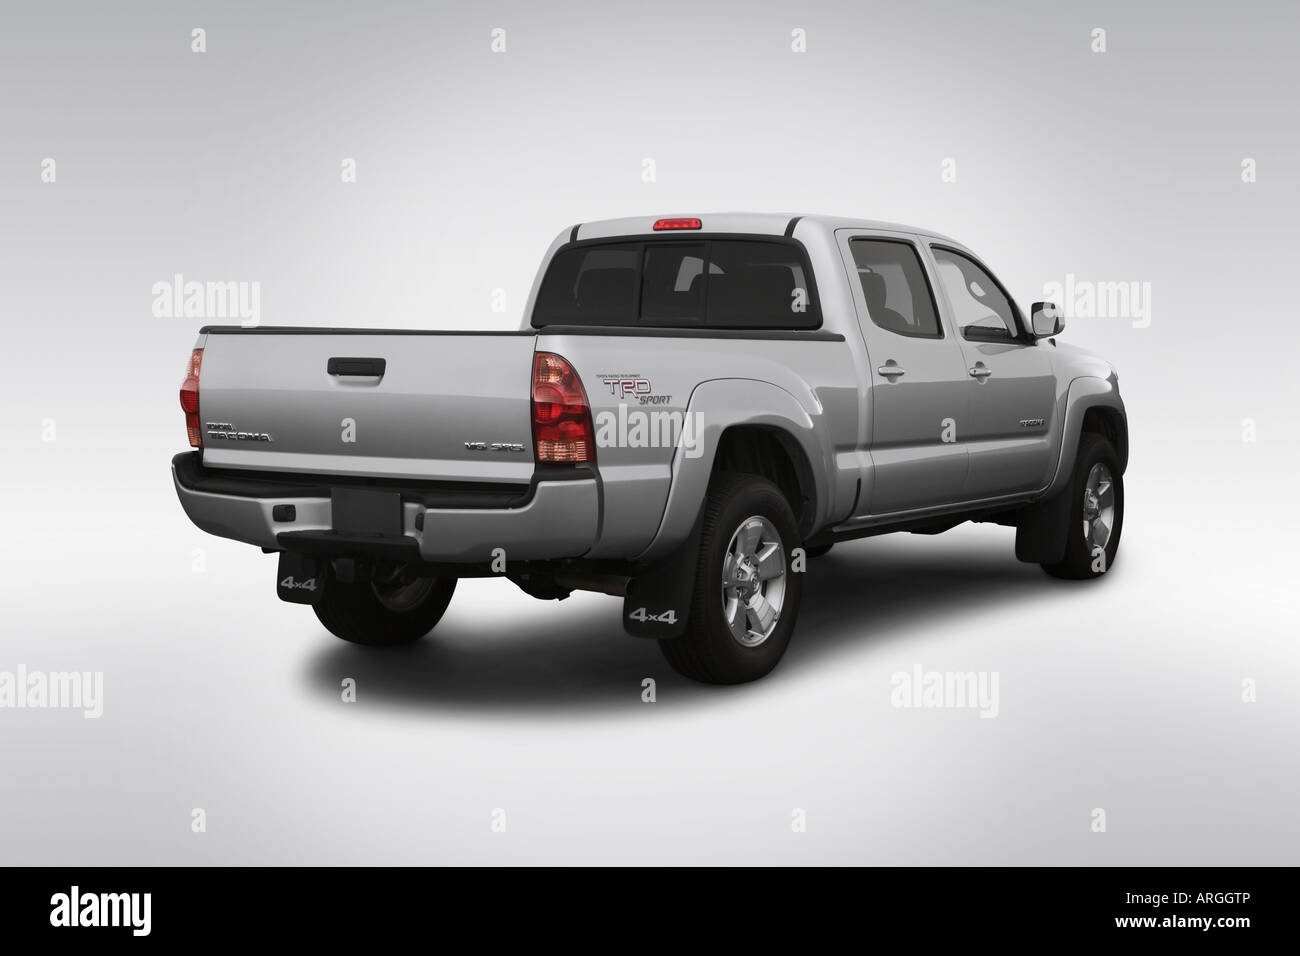 4x4 truck pickup toyota stock photos 4x4 truck pickup toyota stock 2007 toyota tacoma v6 in silver rear angle view stock image publicscrutiny Images